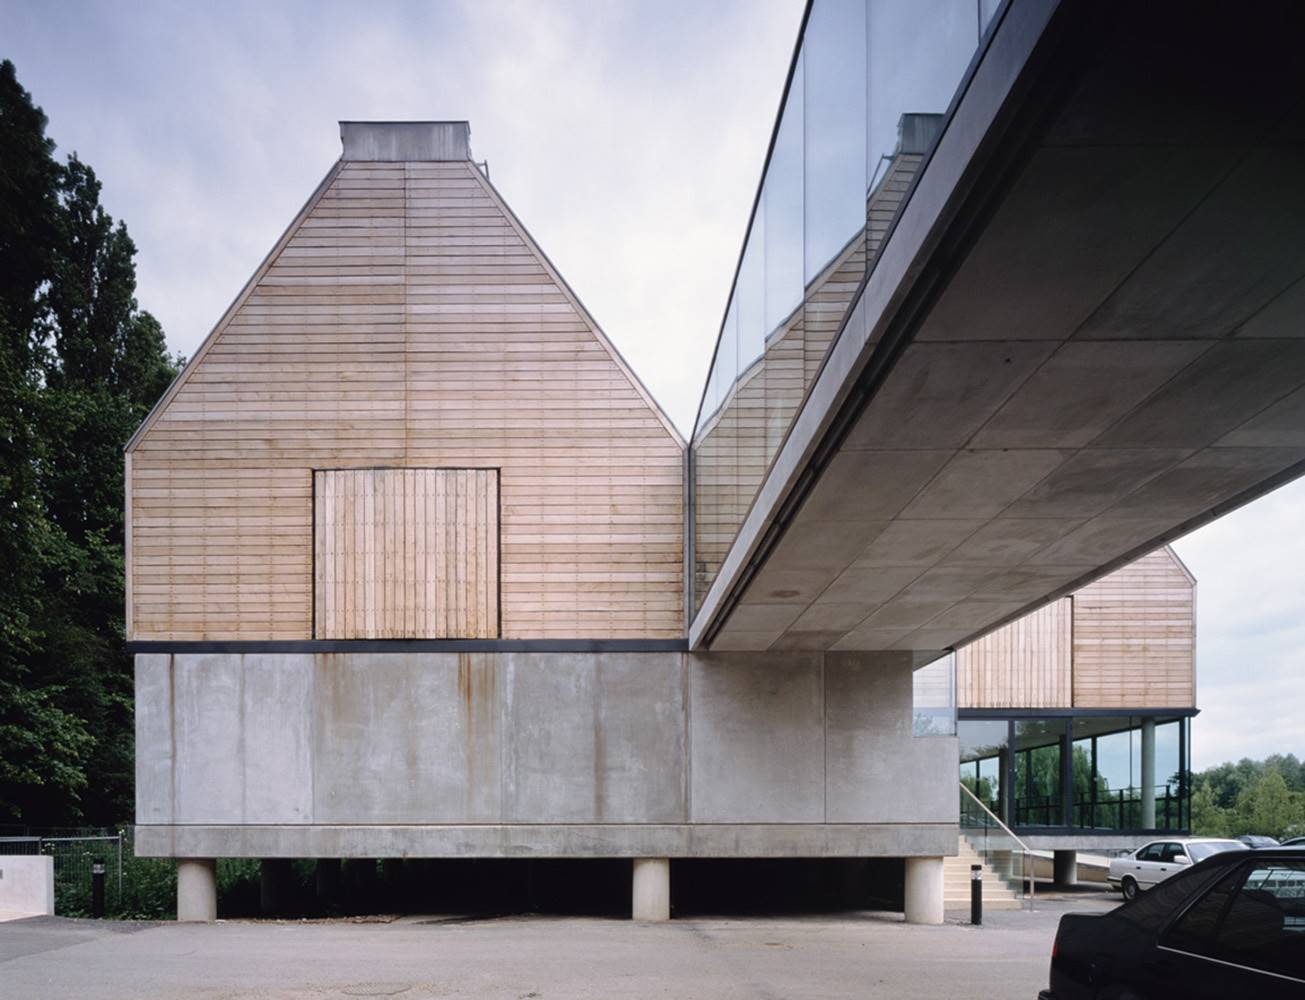 Museo River Rowing, Henley-on-Thames, Reino Unido, David Chipperfield (1997)